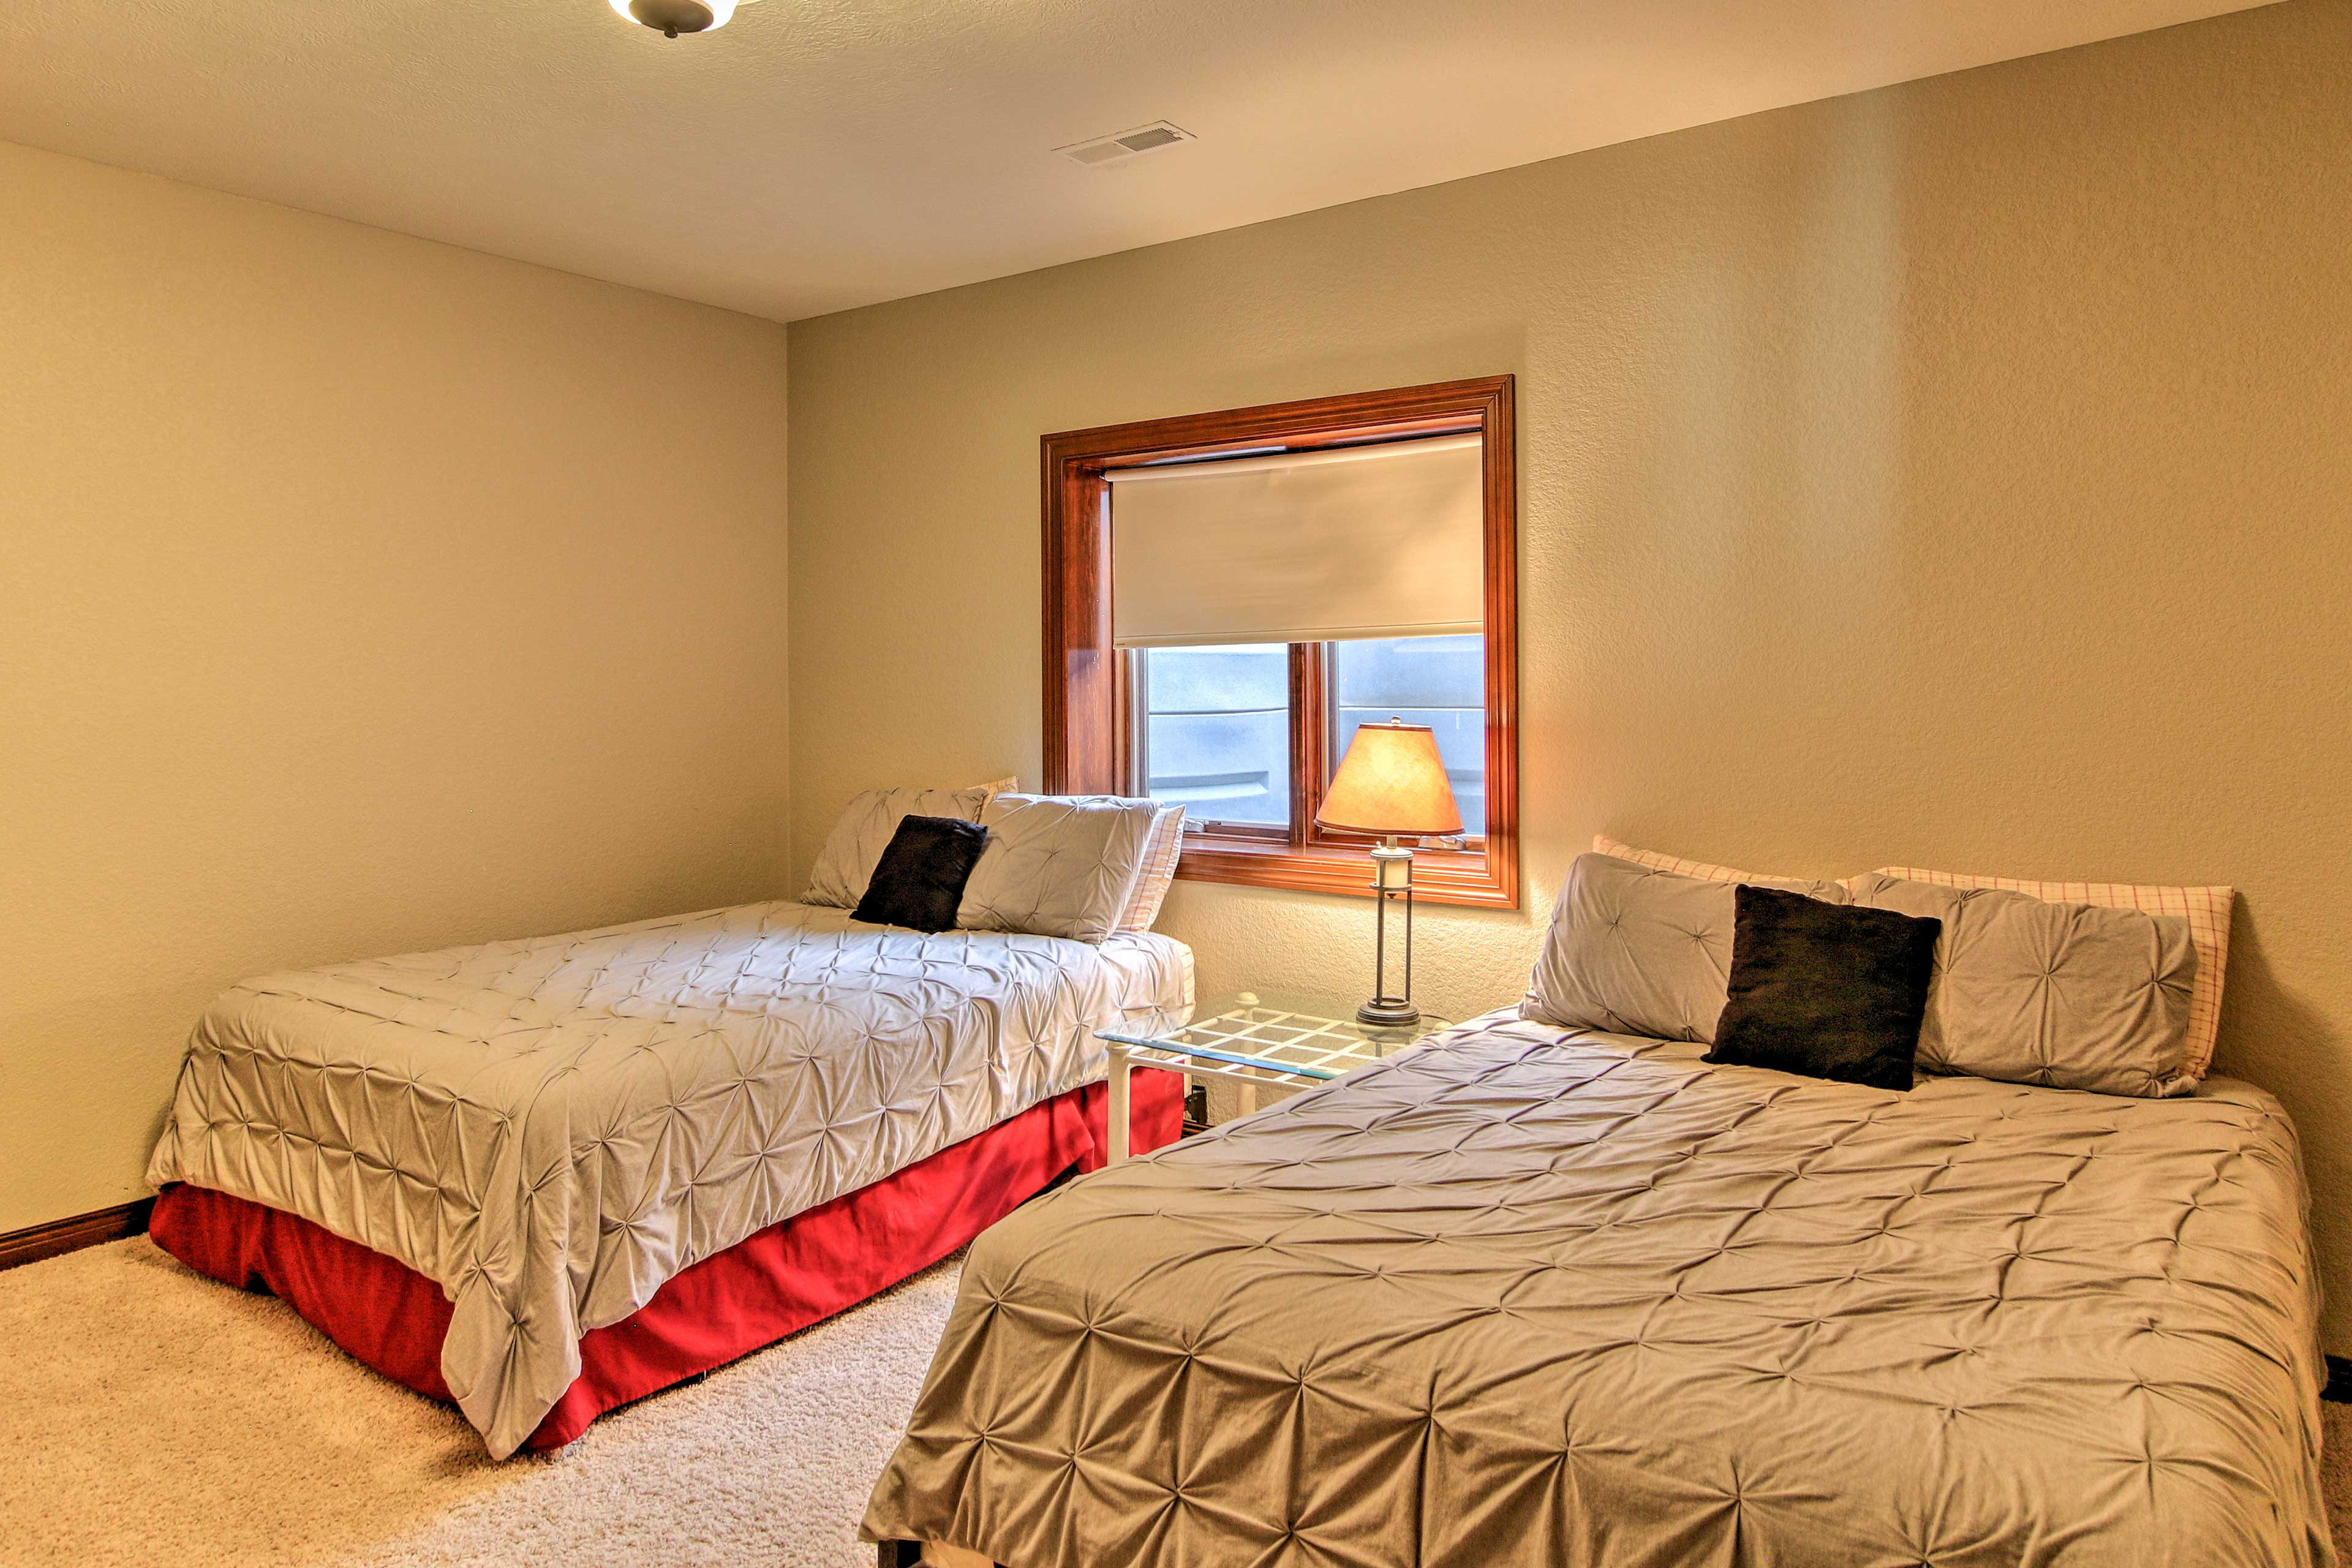 Up to 4 guests can share these 2 queen beds.